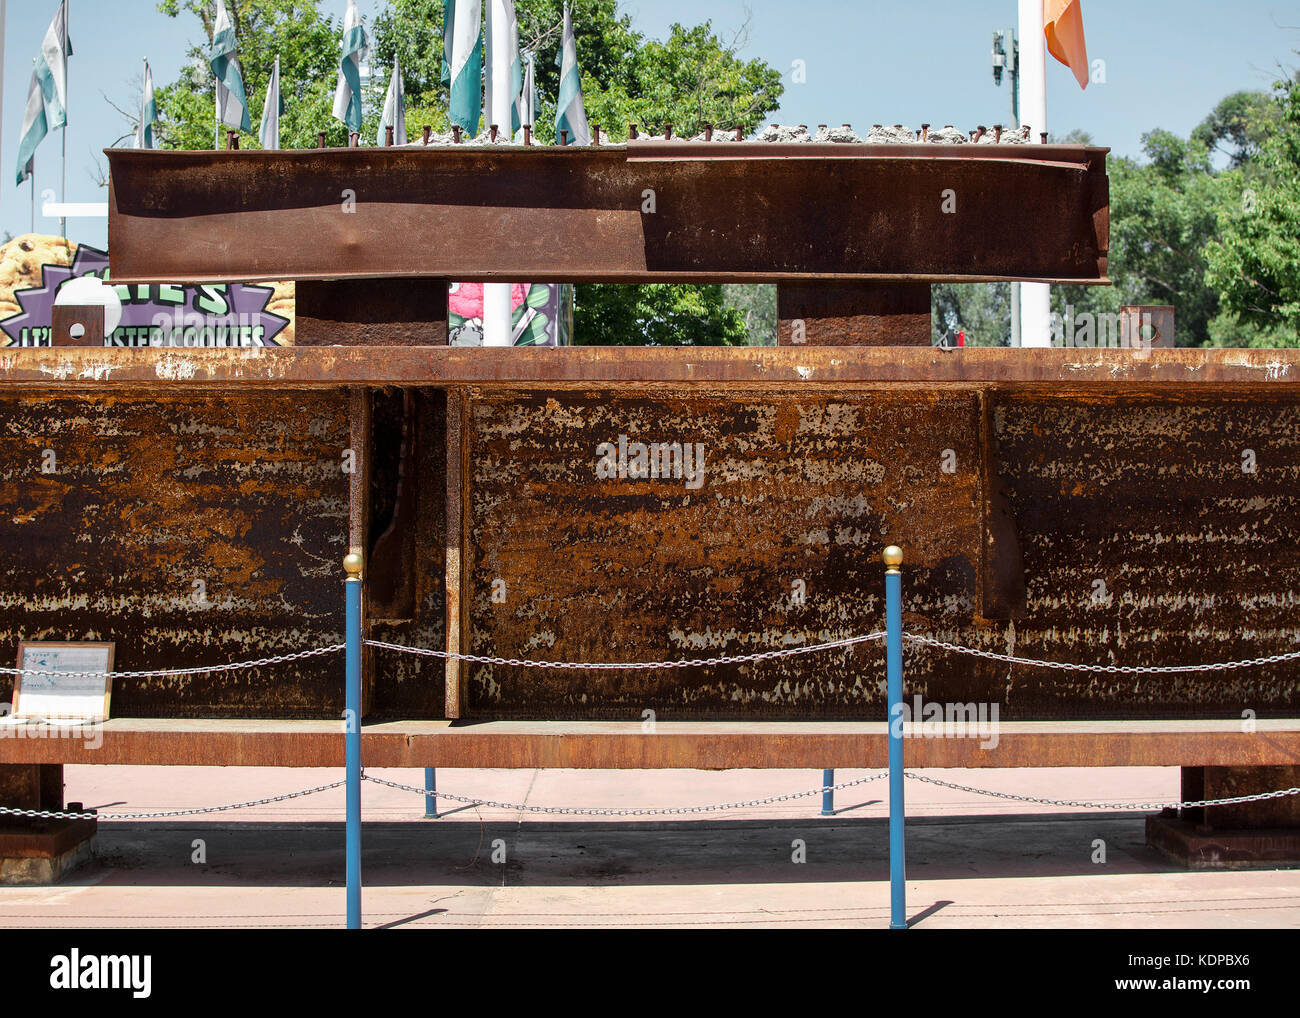 Sacramento, California, U.S.A. 23 July 2017. Steel beam extracted from the World Trade Center on display at the - Stock Image